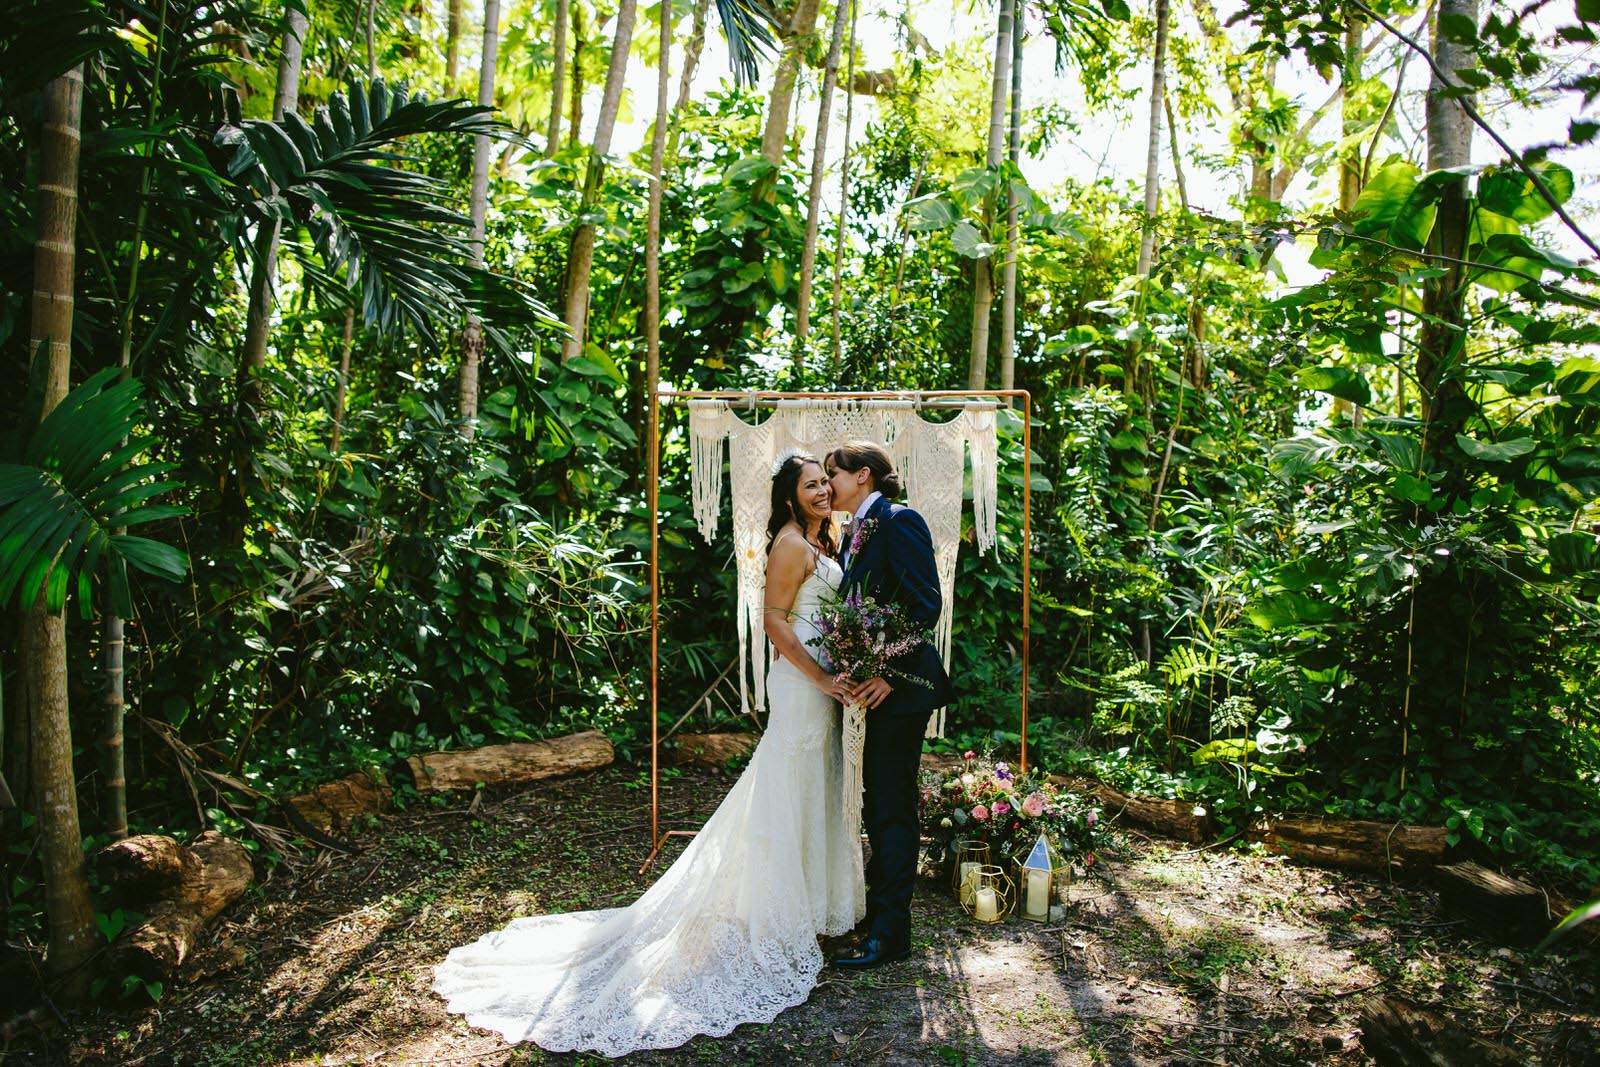 Tiny House Photo Gina Marie Weddings & Events two brides outside crystals Dancing With Her